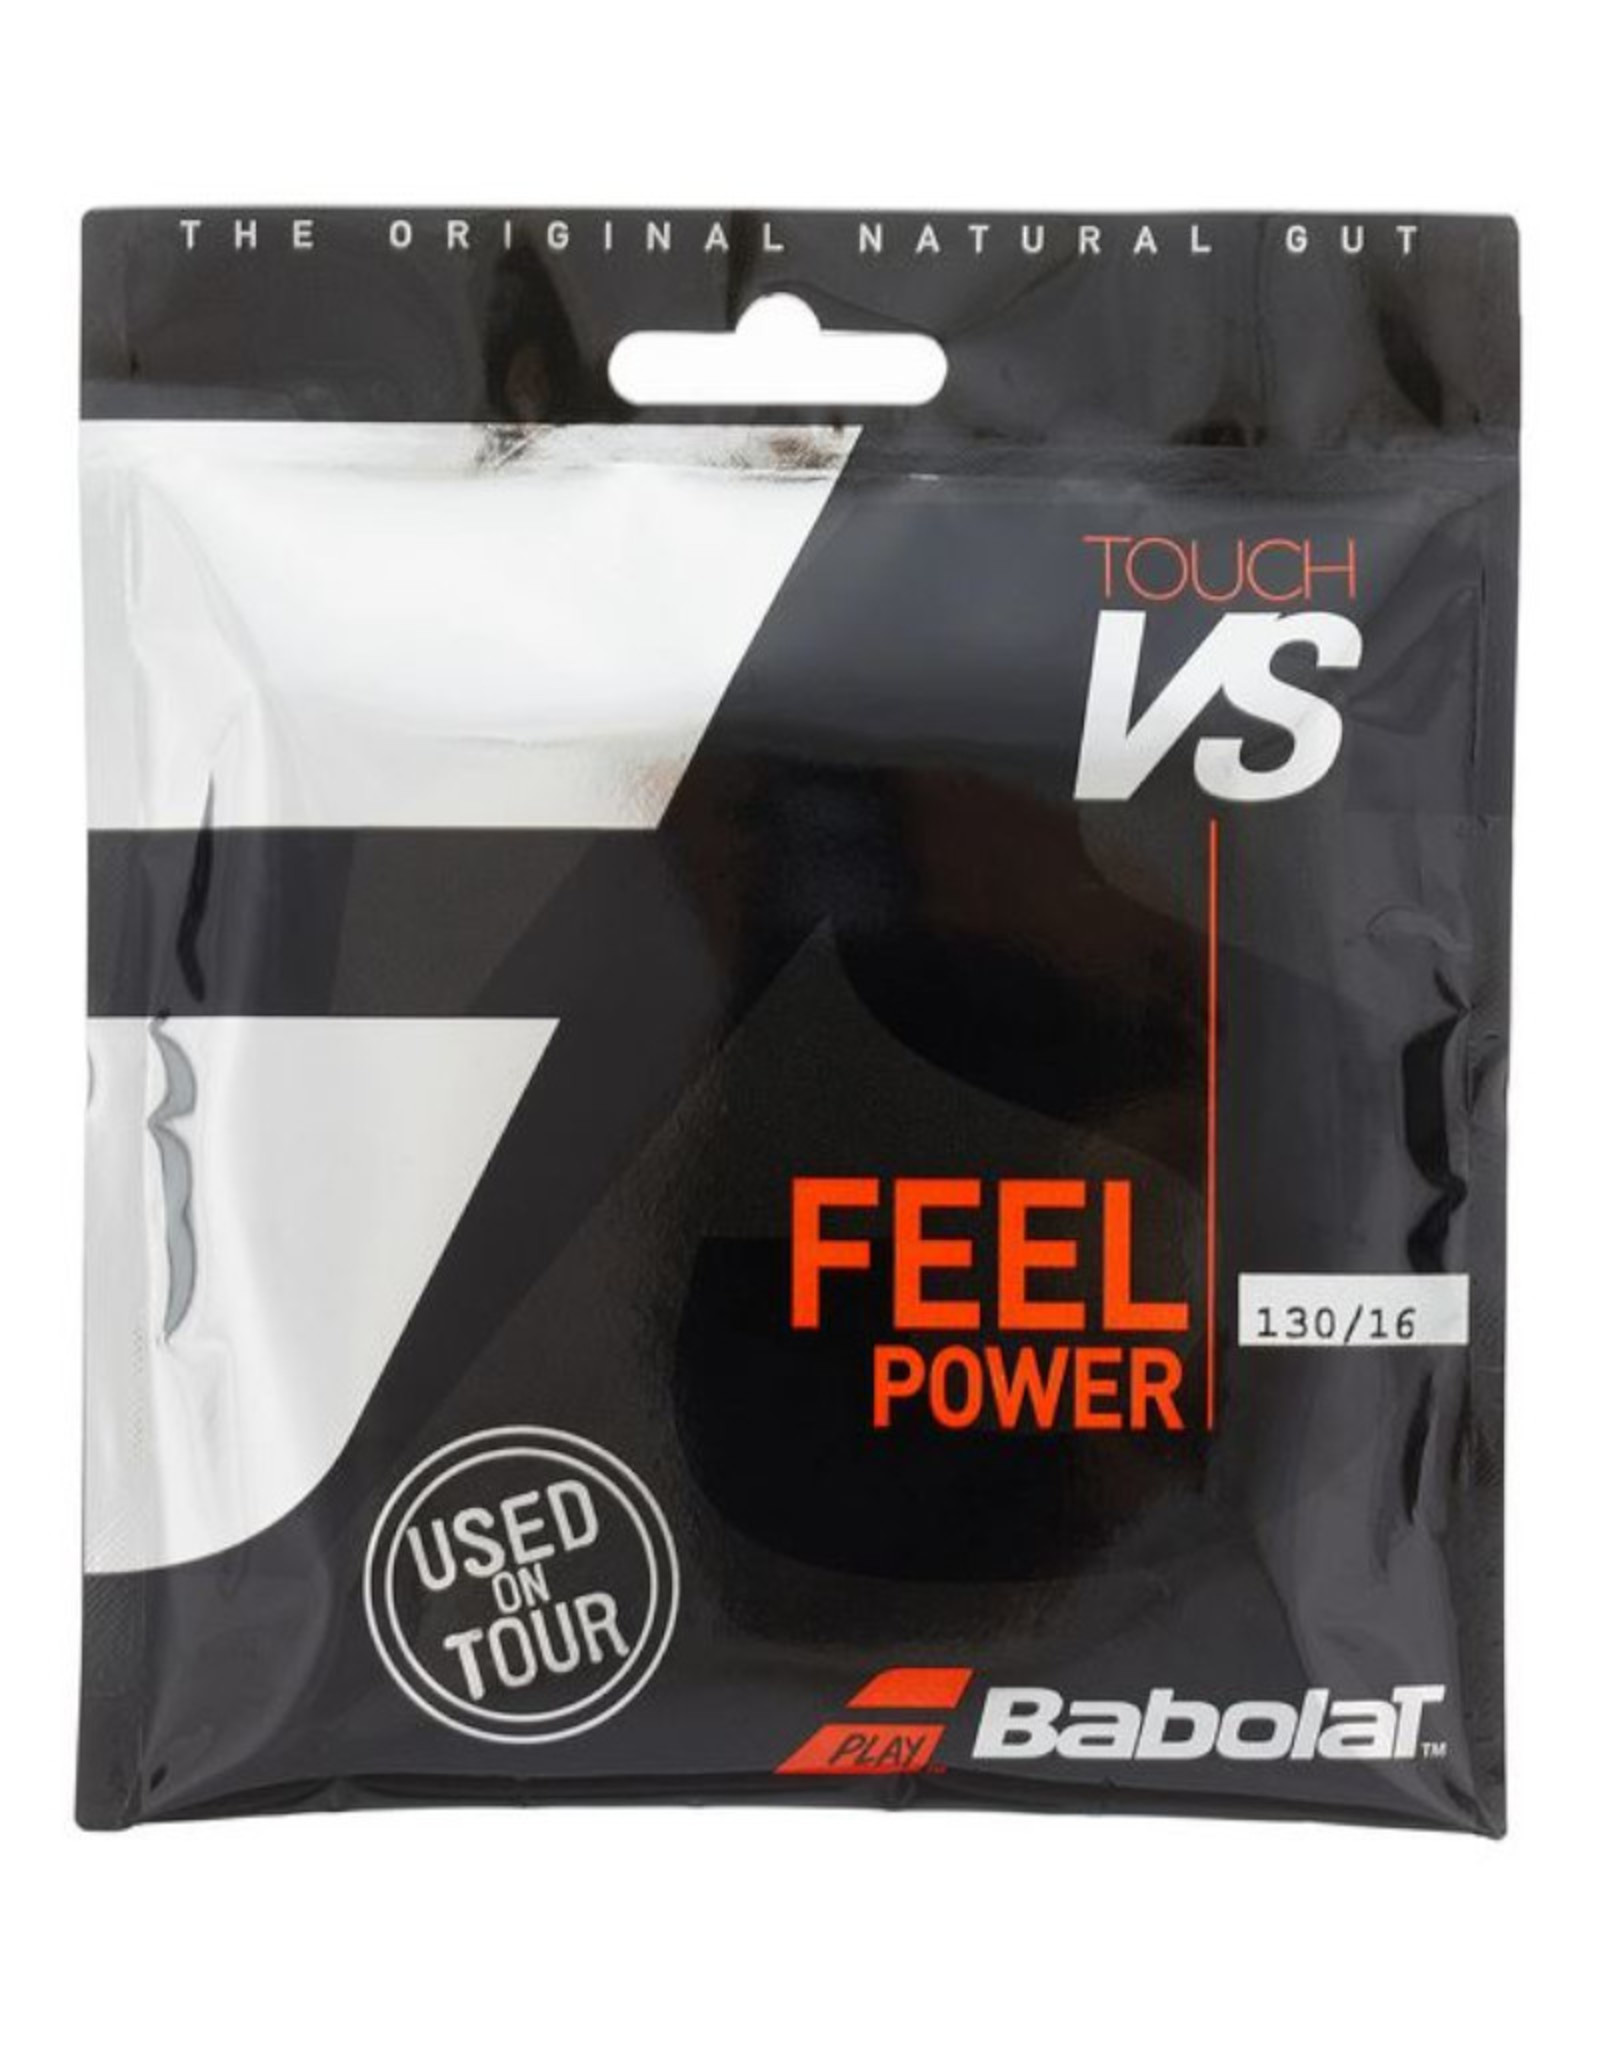 BABOLAT VS TOUCH NATURAL GUT 16 FULL SET